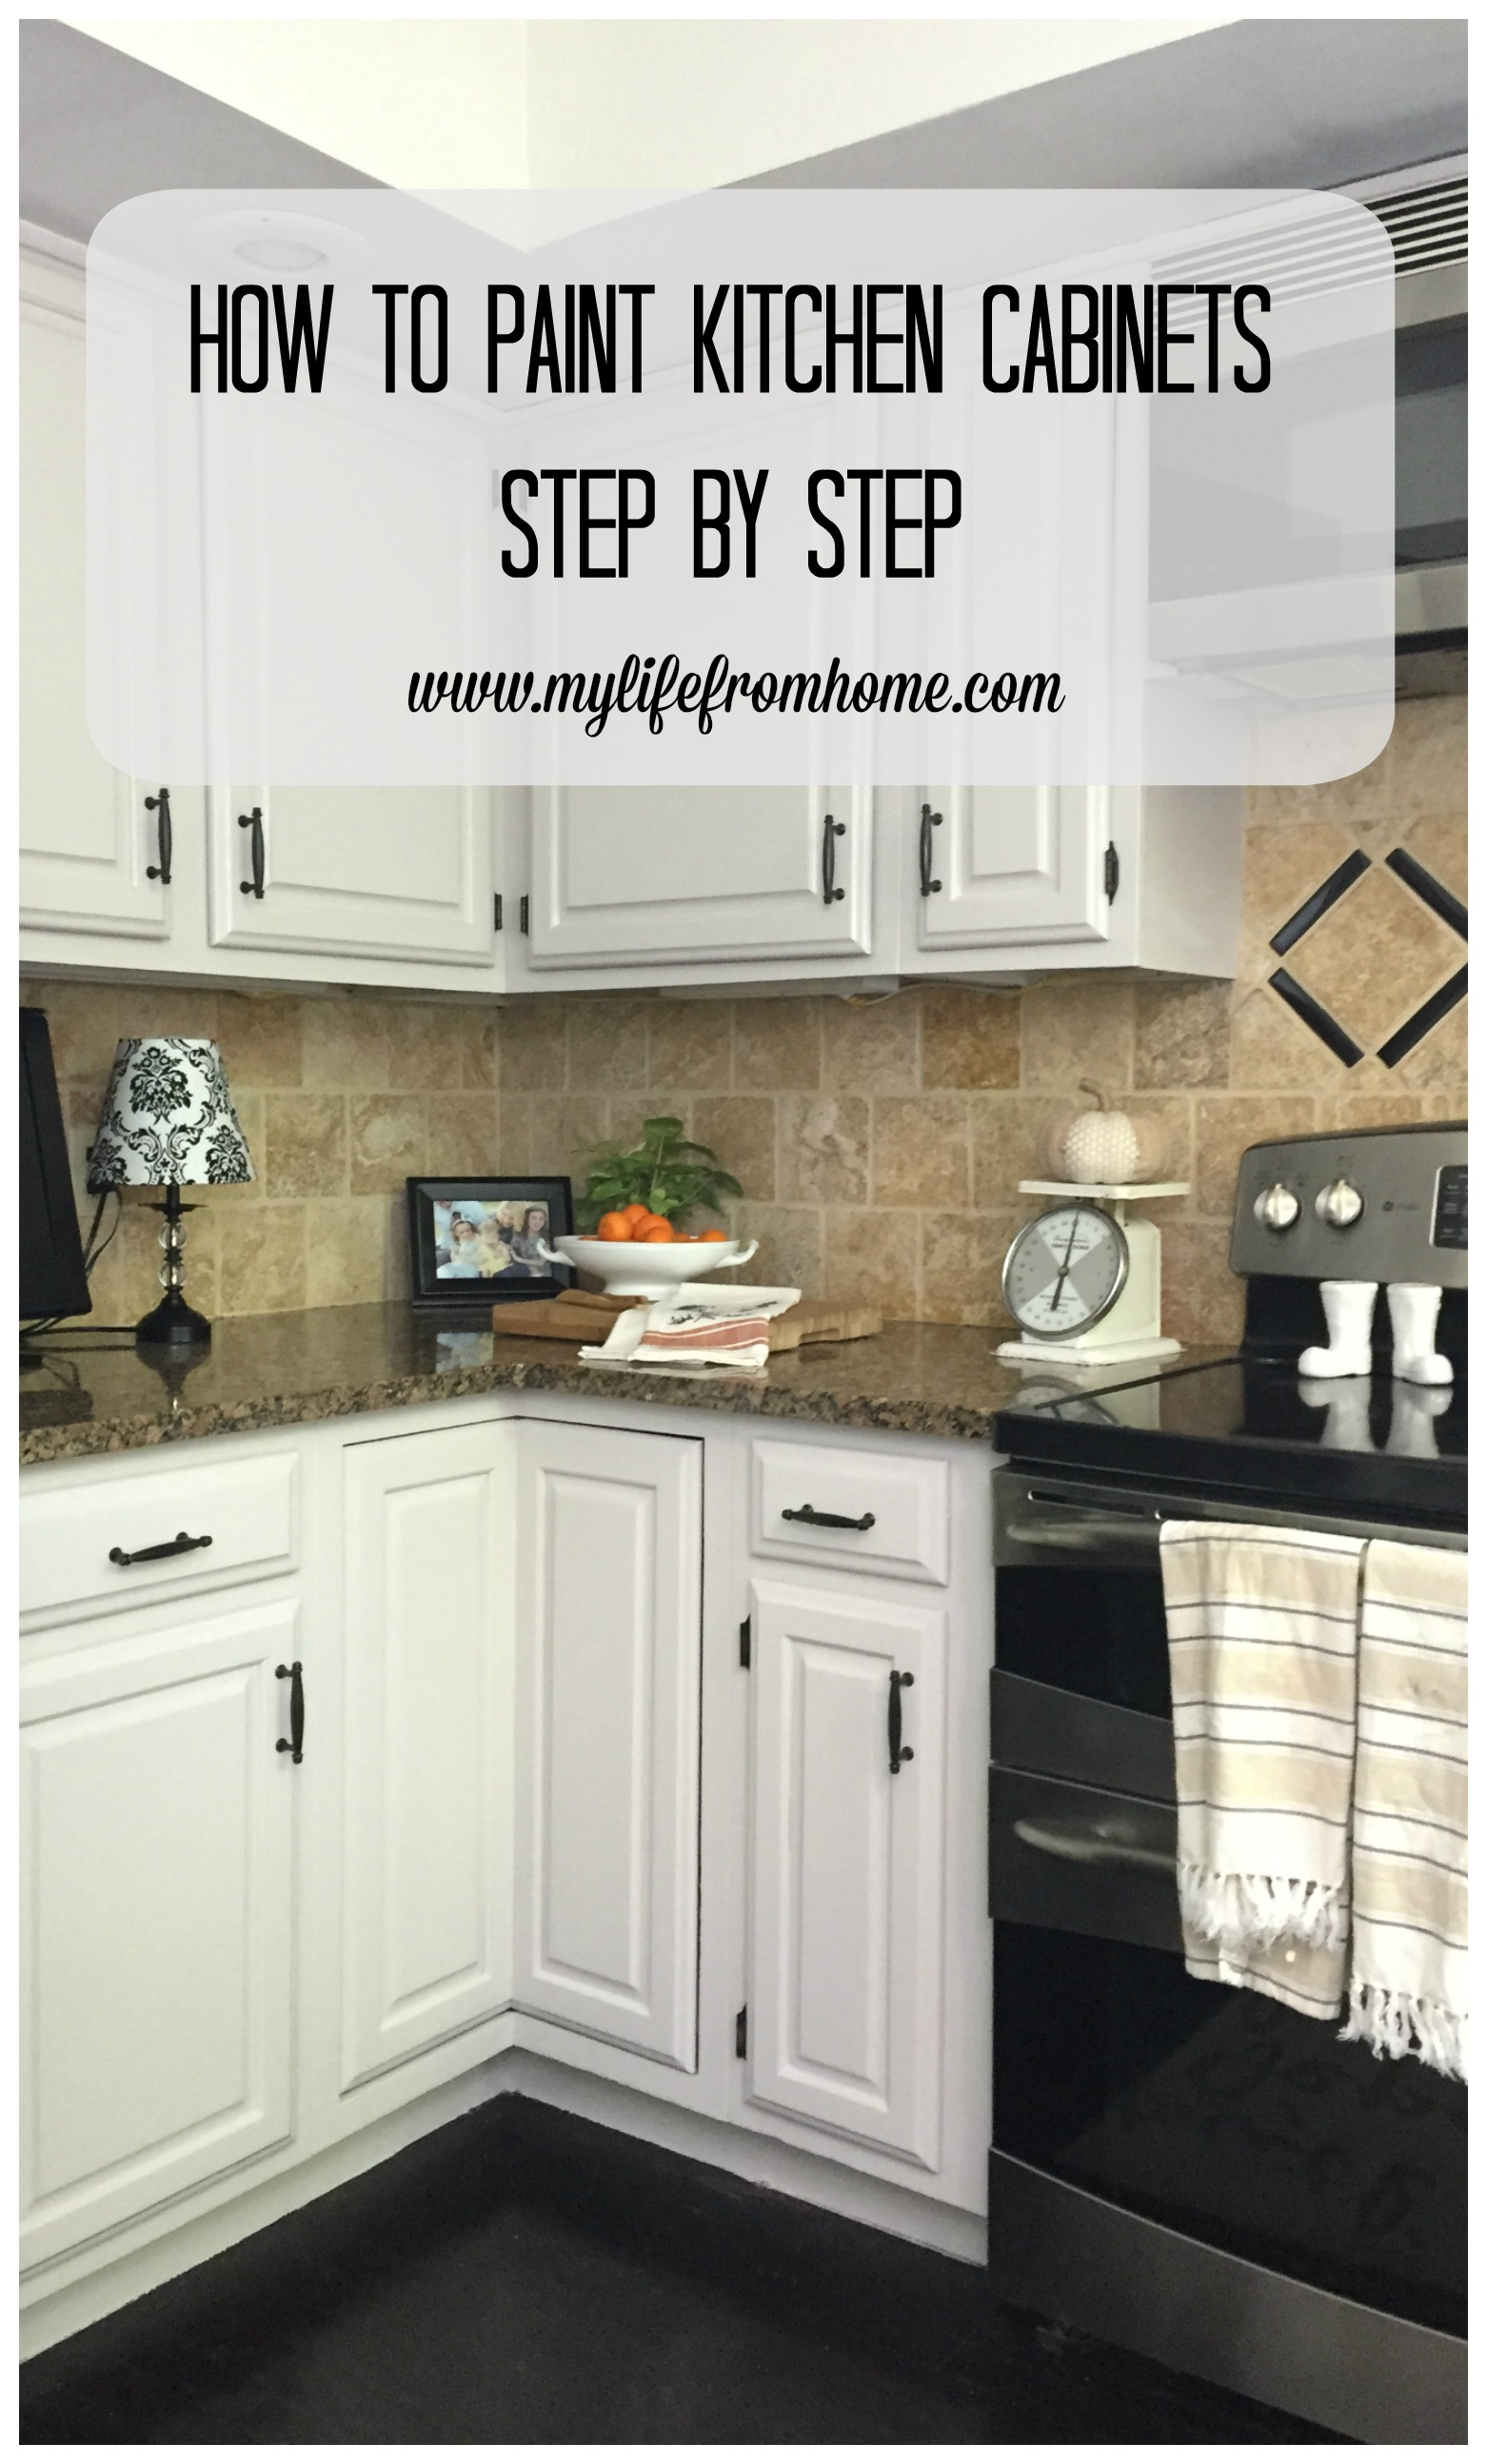 How To Paint Kitchen Cabinets Step By Step By Www.mylifefromhome.com Paint  Painted